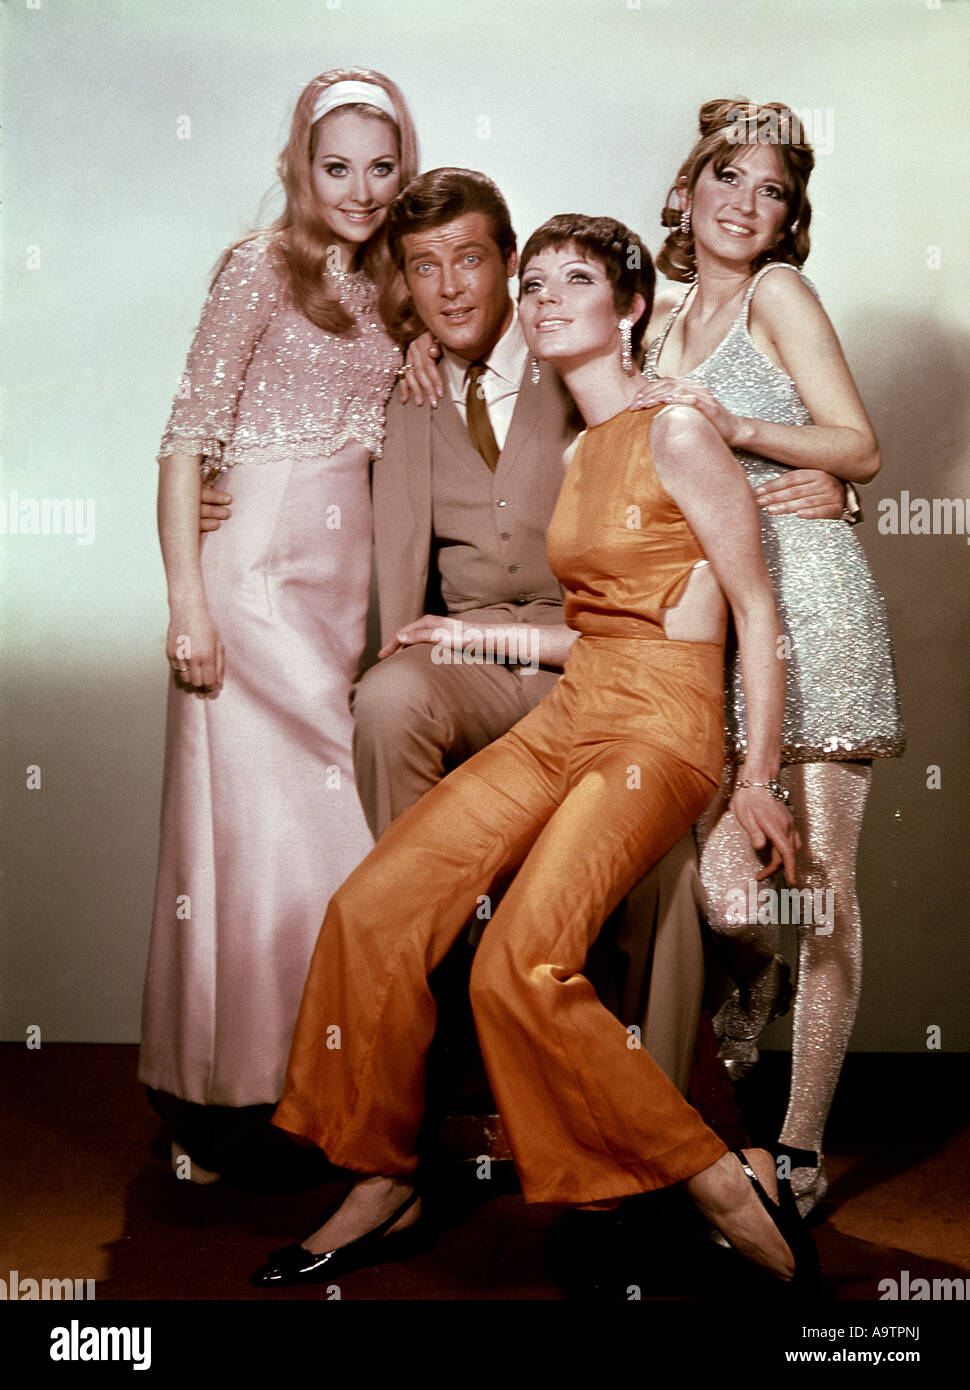 THE SAINT - Roger Moore in the ITC TV series - Stock Image